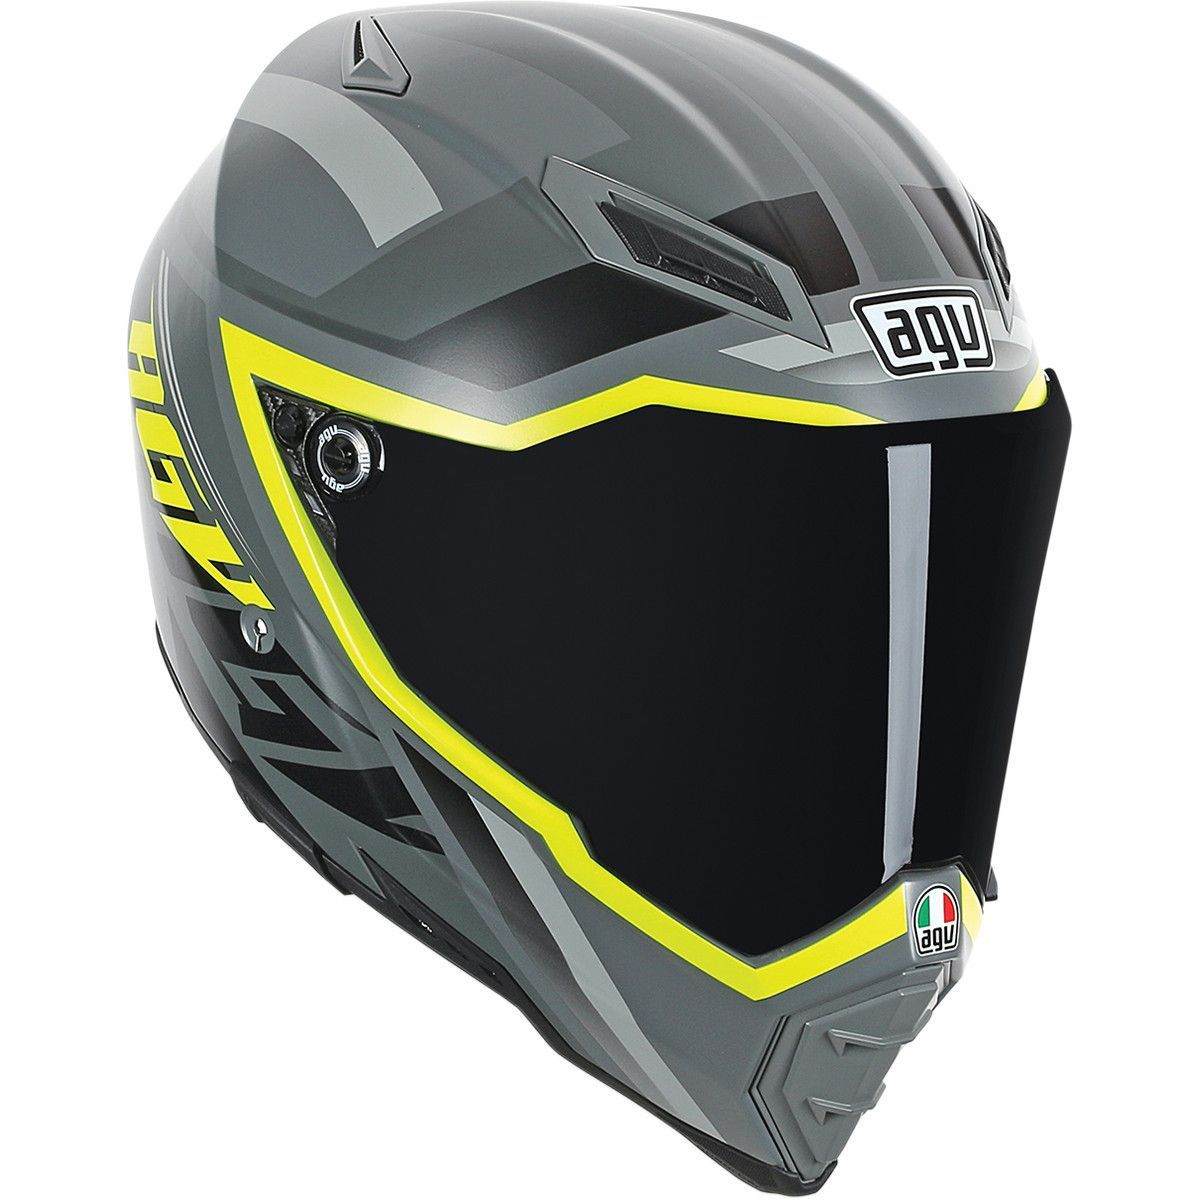 Find the AGV Naked Karakum Helmet - at Dennis Kirk. Shop our complete  selection of Motorcycle Goldwing parts and accessories including the AGV  Naked Karakum ...